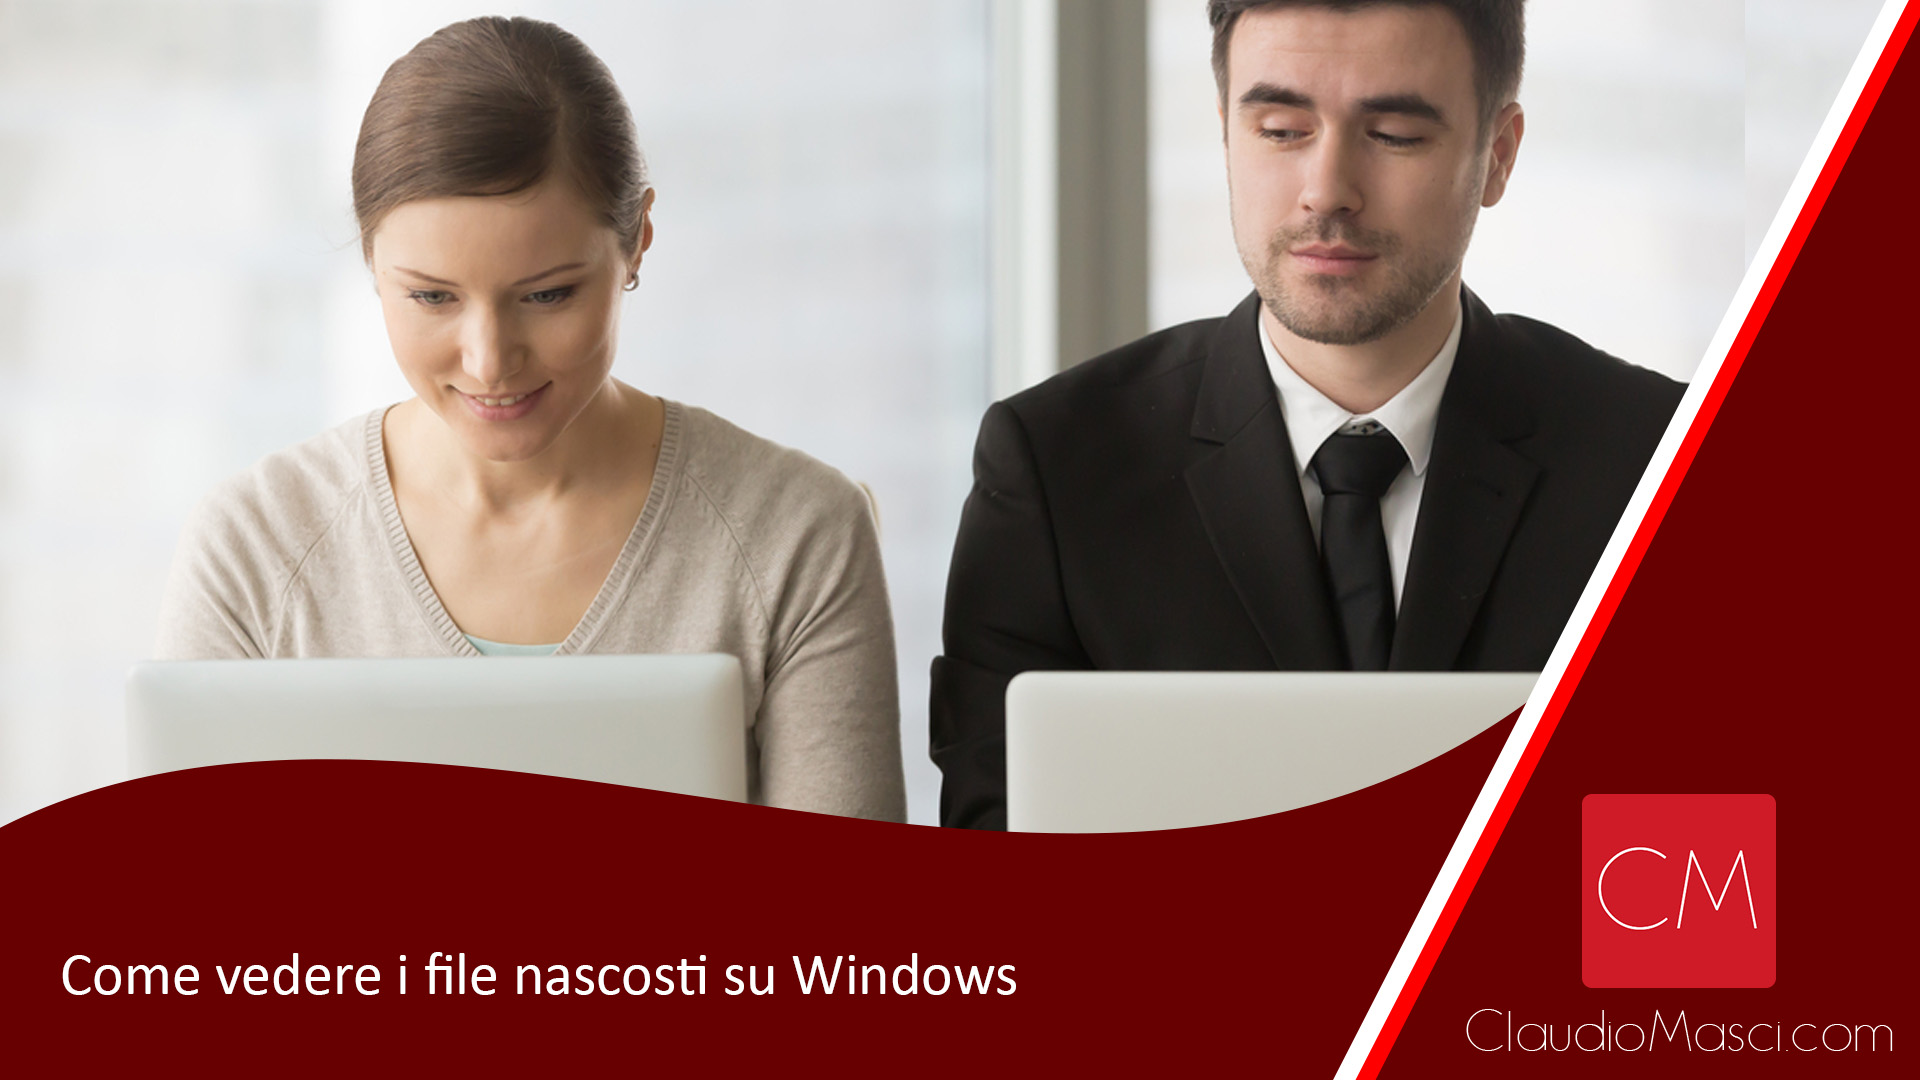 Come vedere i file nascosti su Windows